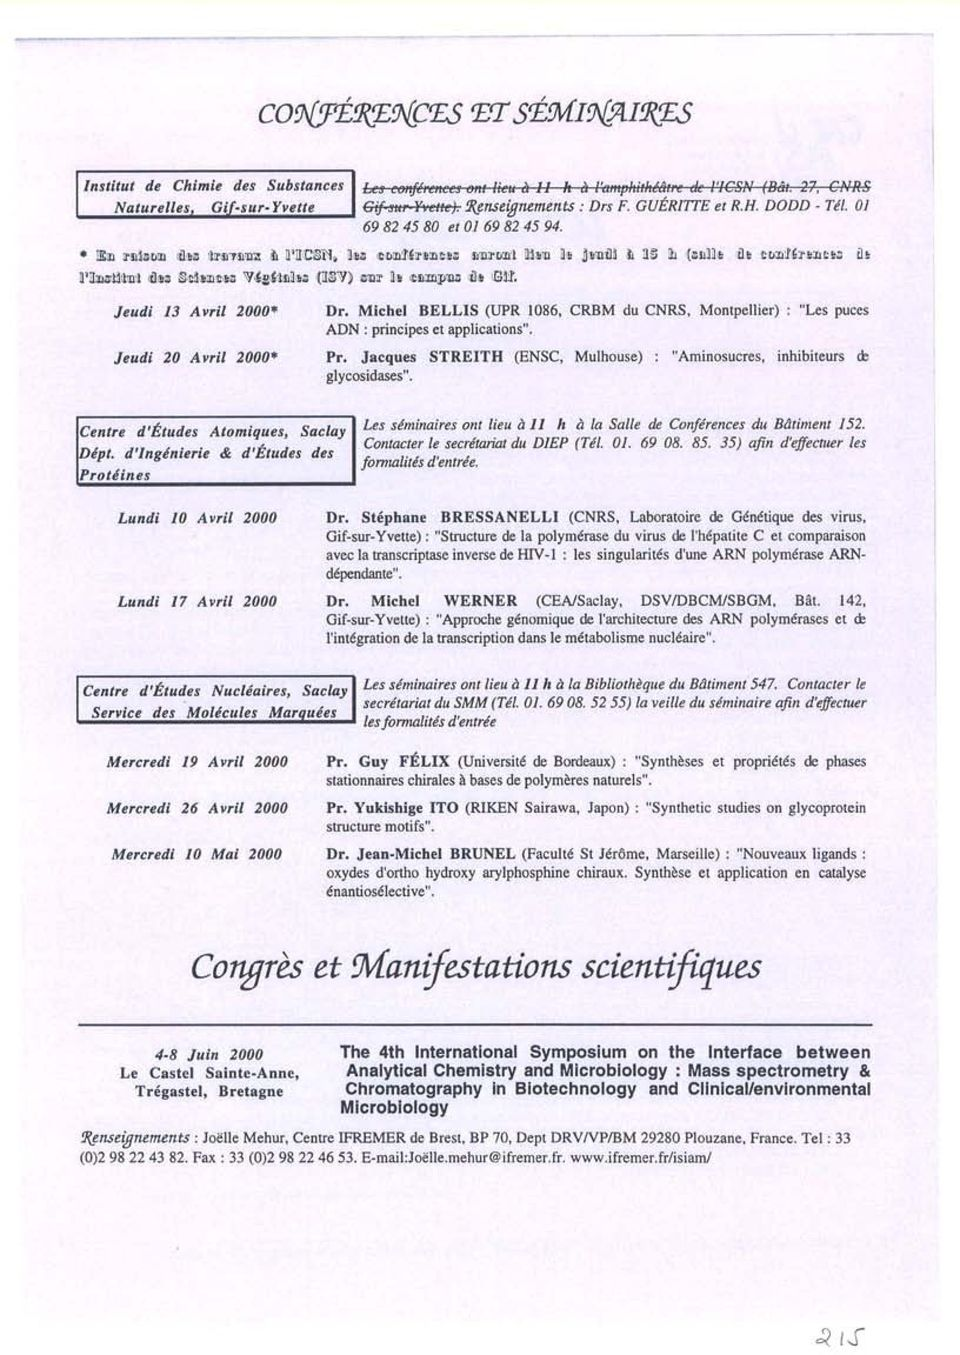 "Michel BELLIS (IJPR 1086, CRBM du CNRS, Montpellier) : ""Les puces ADN : p incipes ct applications"". Jcutli 20 Avril 2000* Pr."